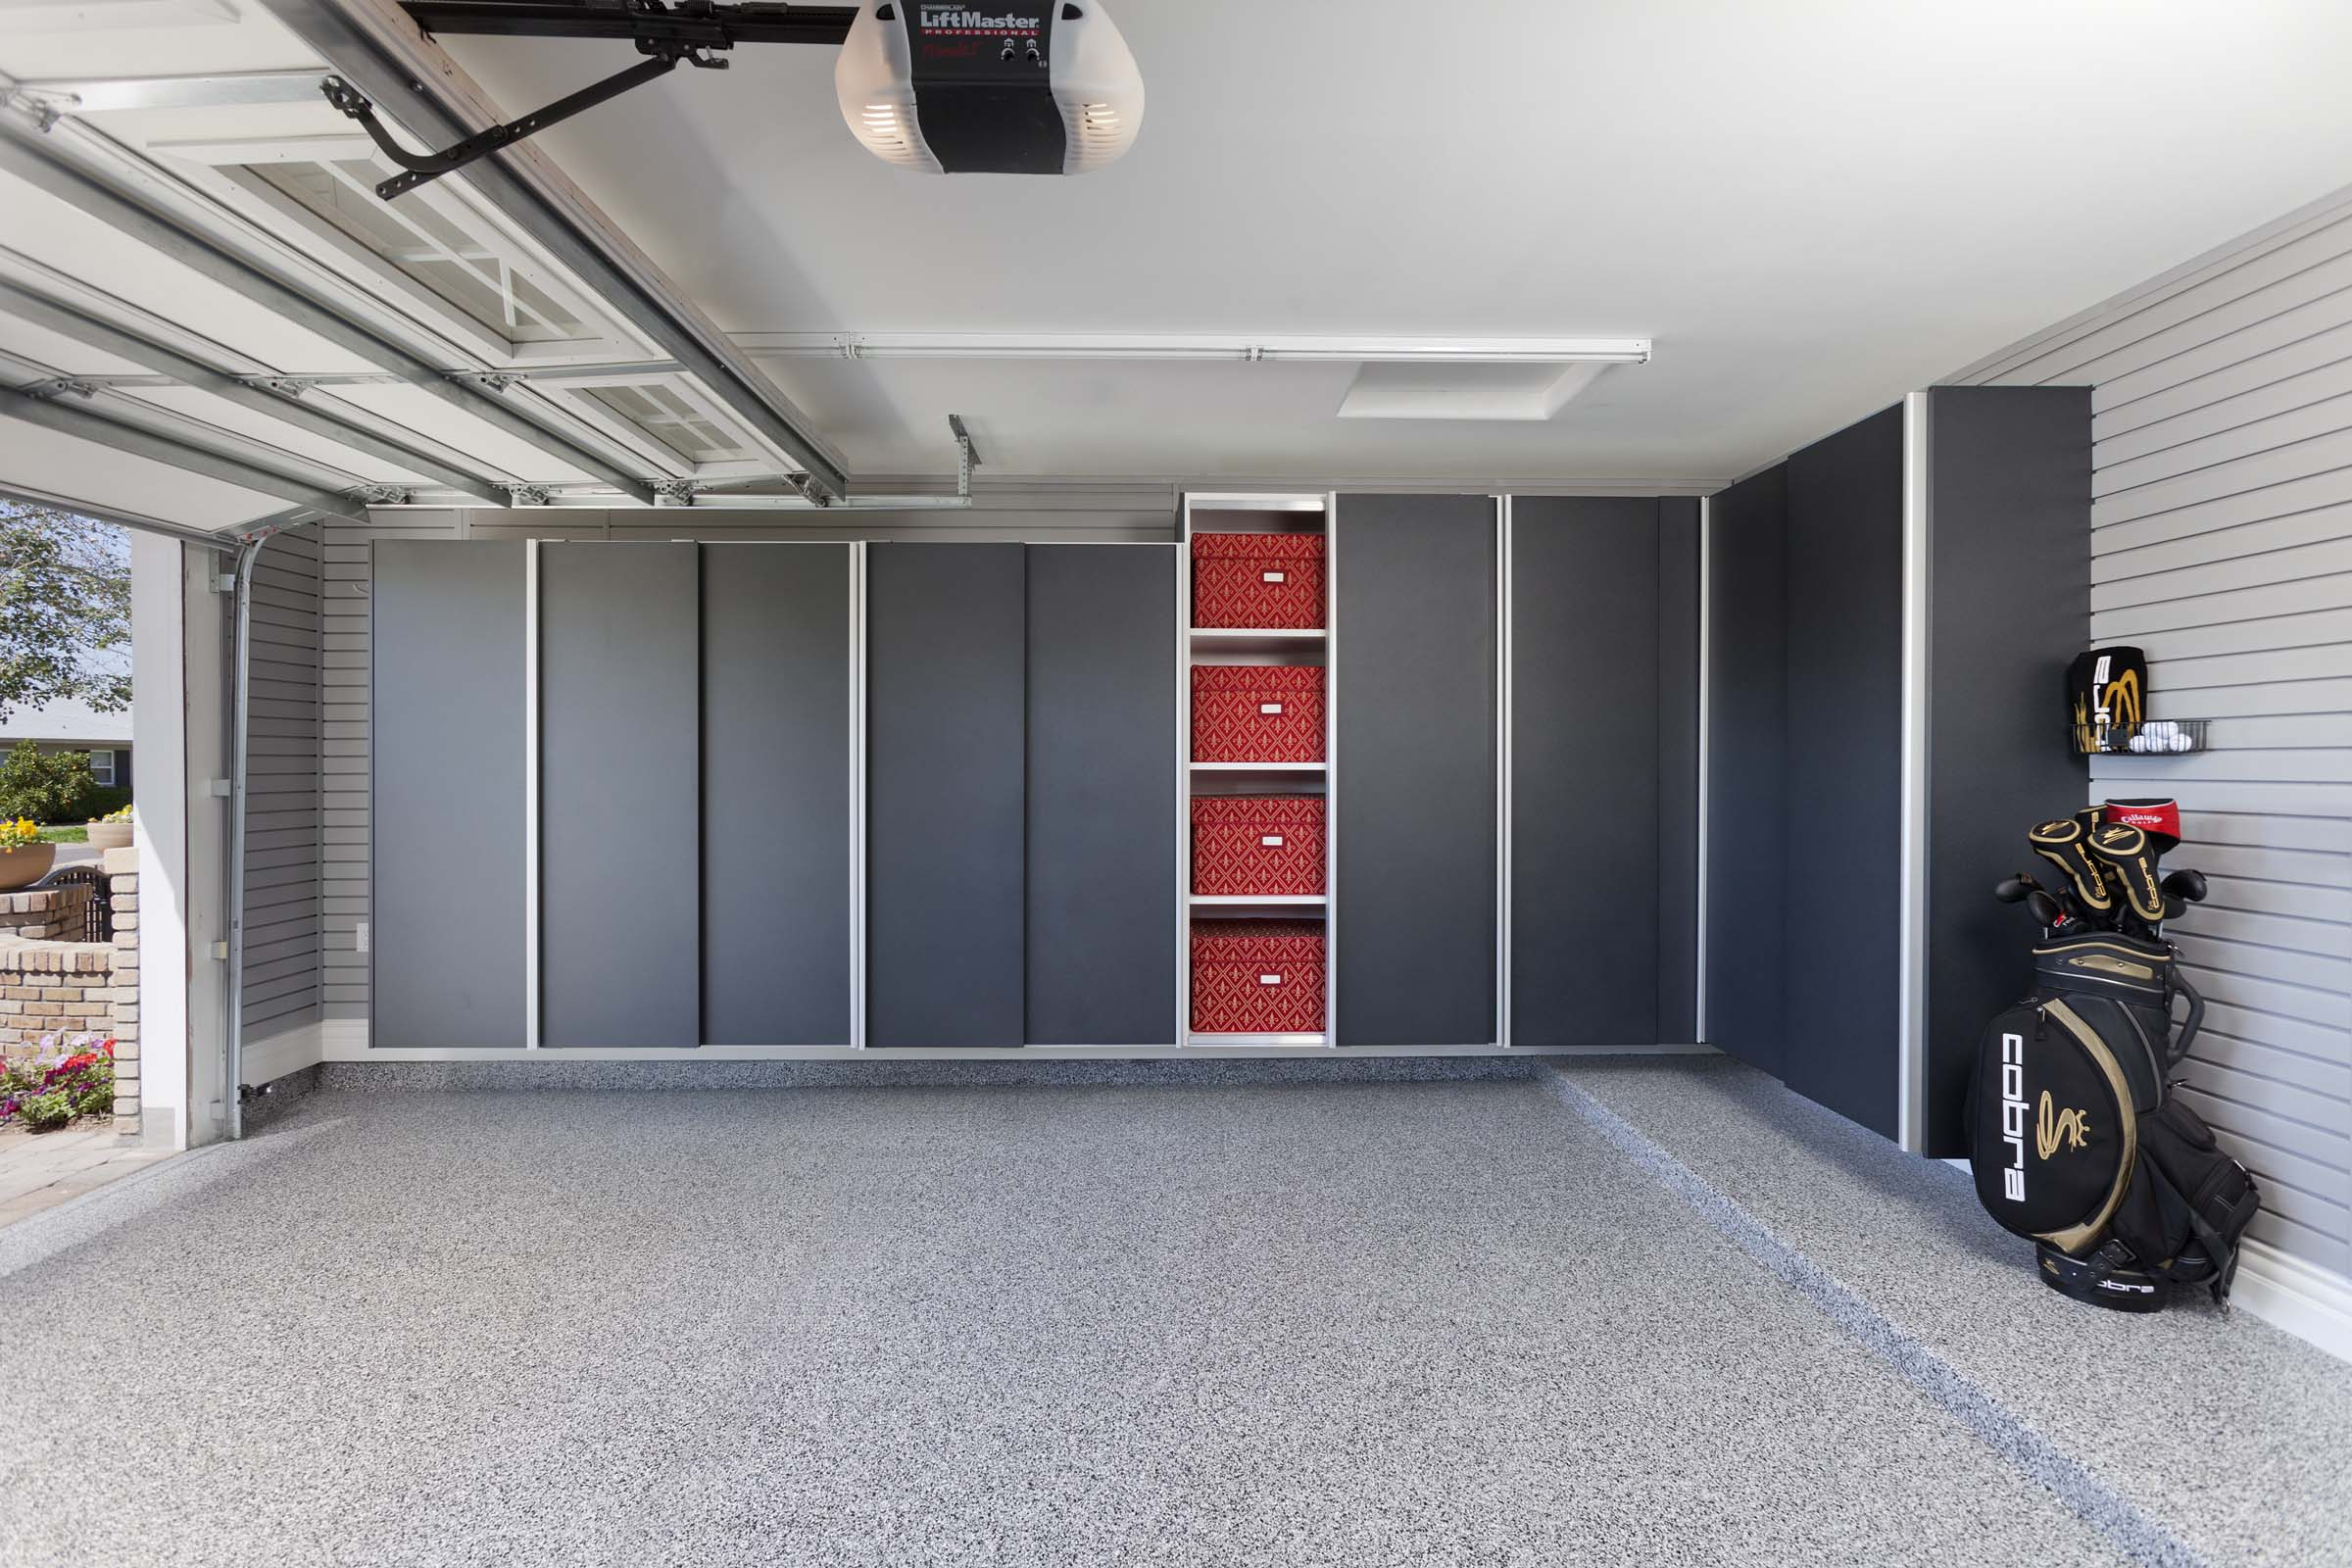 Wall mounted garage cabinets by Closets of Tulsa keep your storage system and your floors clean and clutter-free.  Call Closets of Tulsa  now for your FREE consultation and 3-D garage design:  918.609.0214